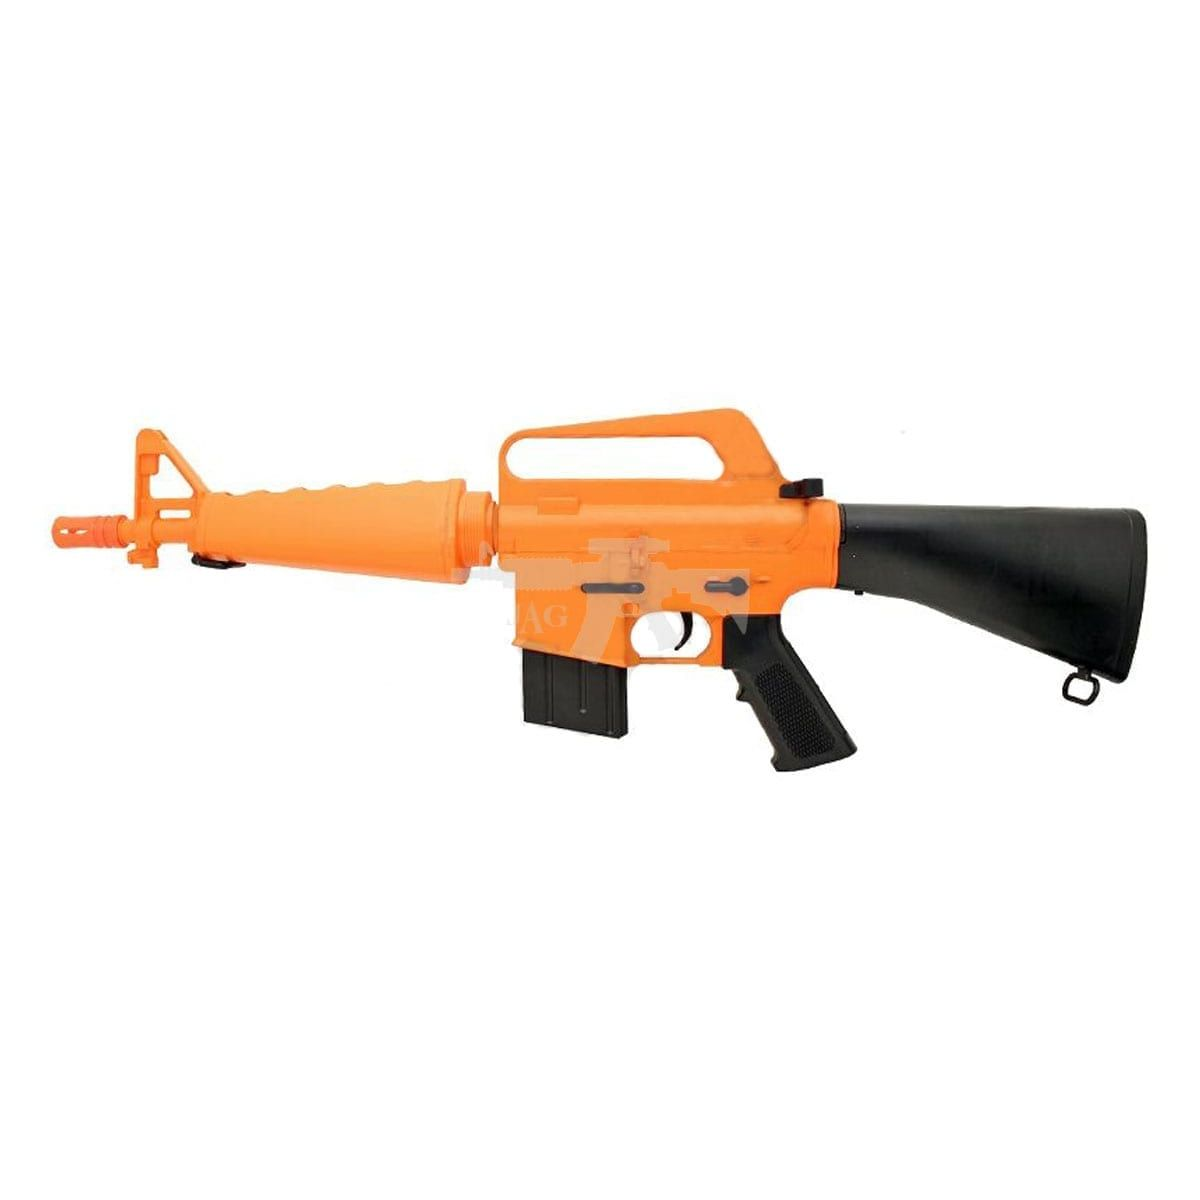 DOUBLE EAGLE M308 LIMITED EDITION M16 MINI AIRSOFT SPRING RIFLE